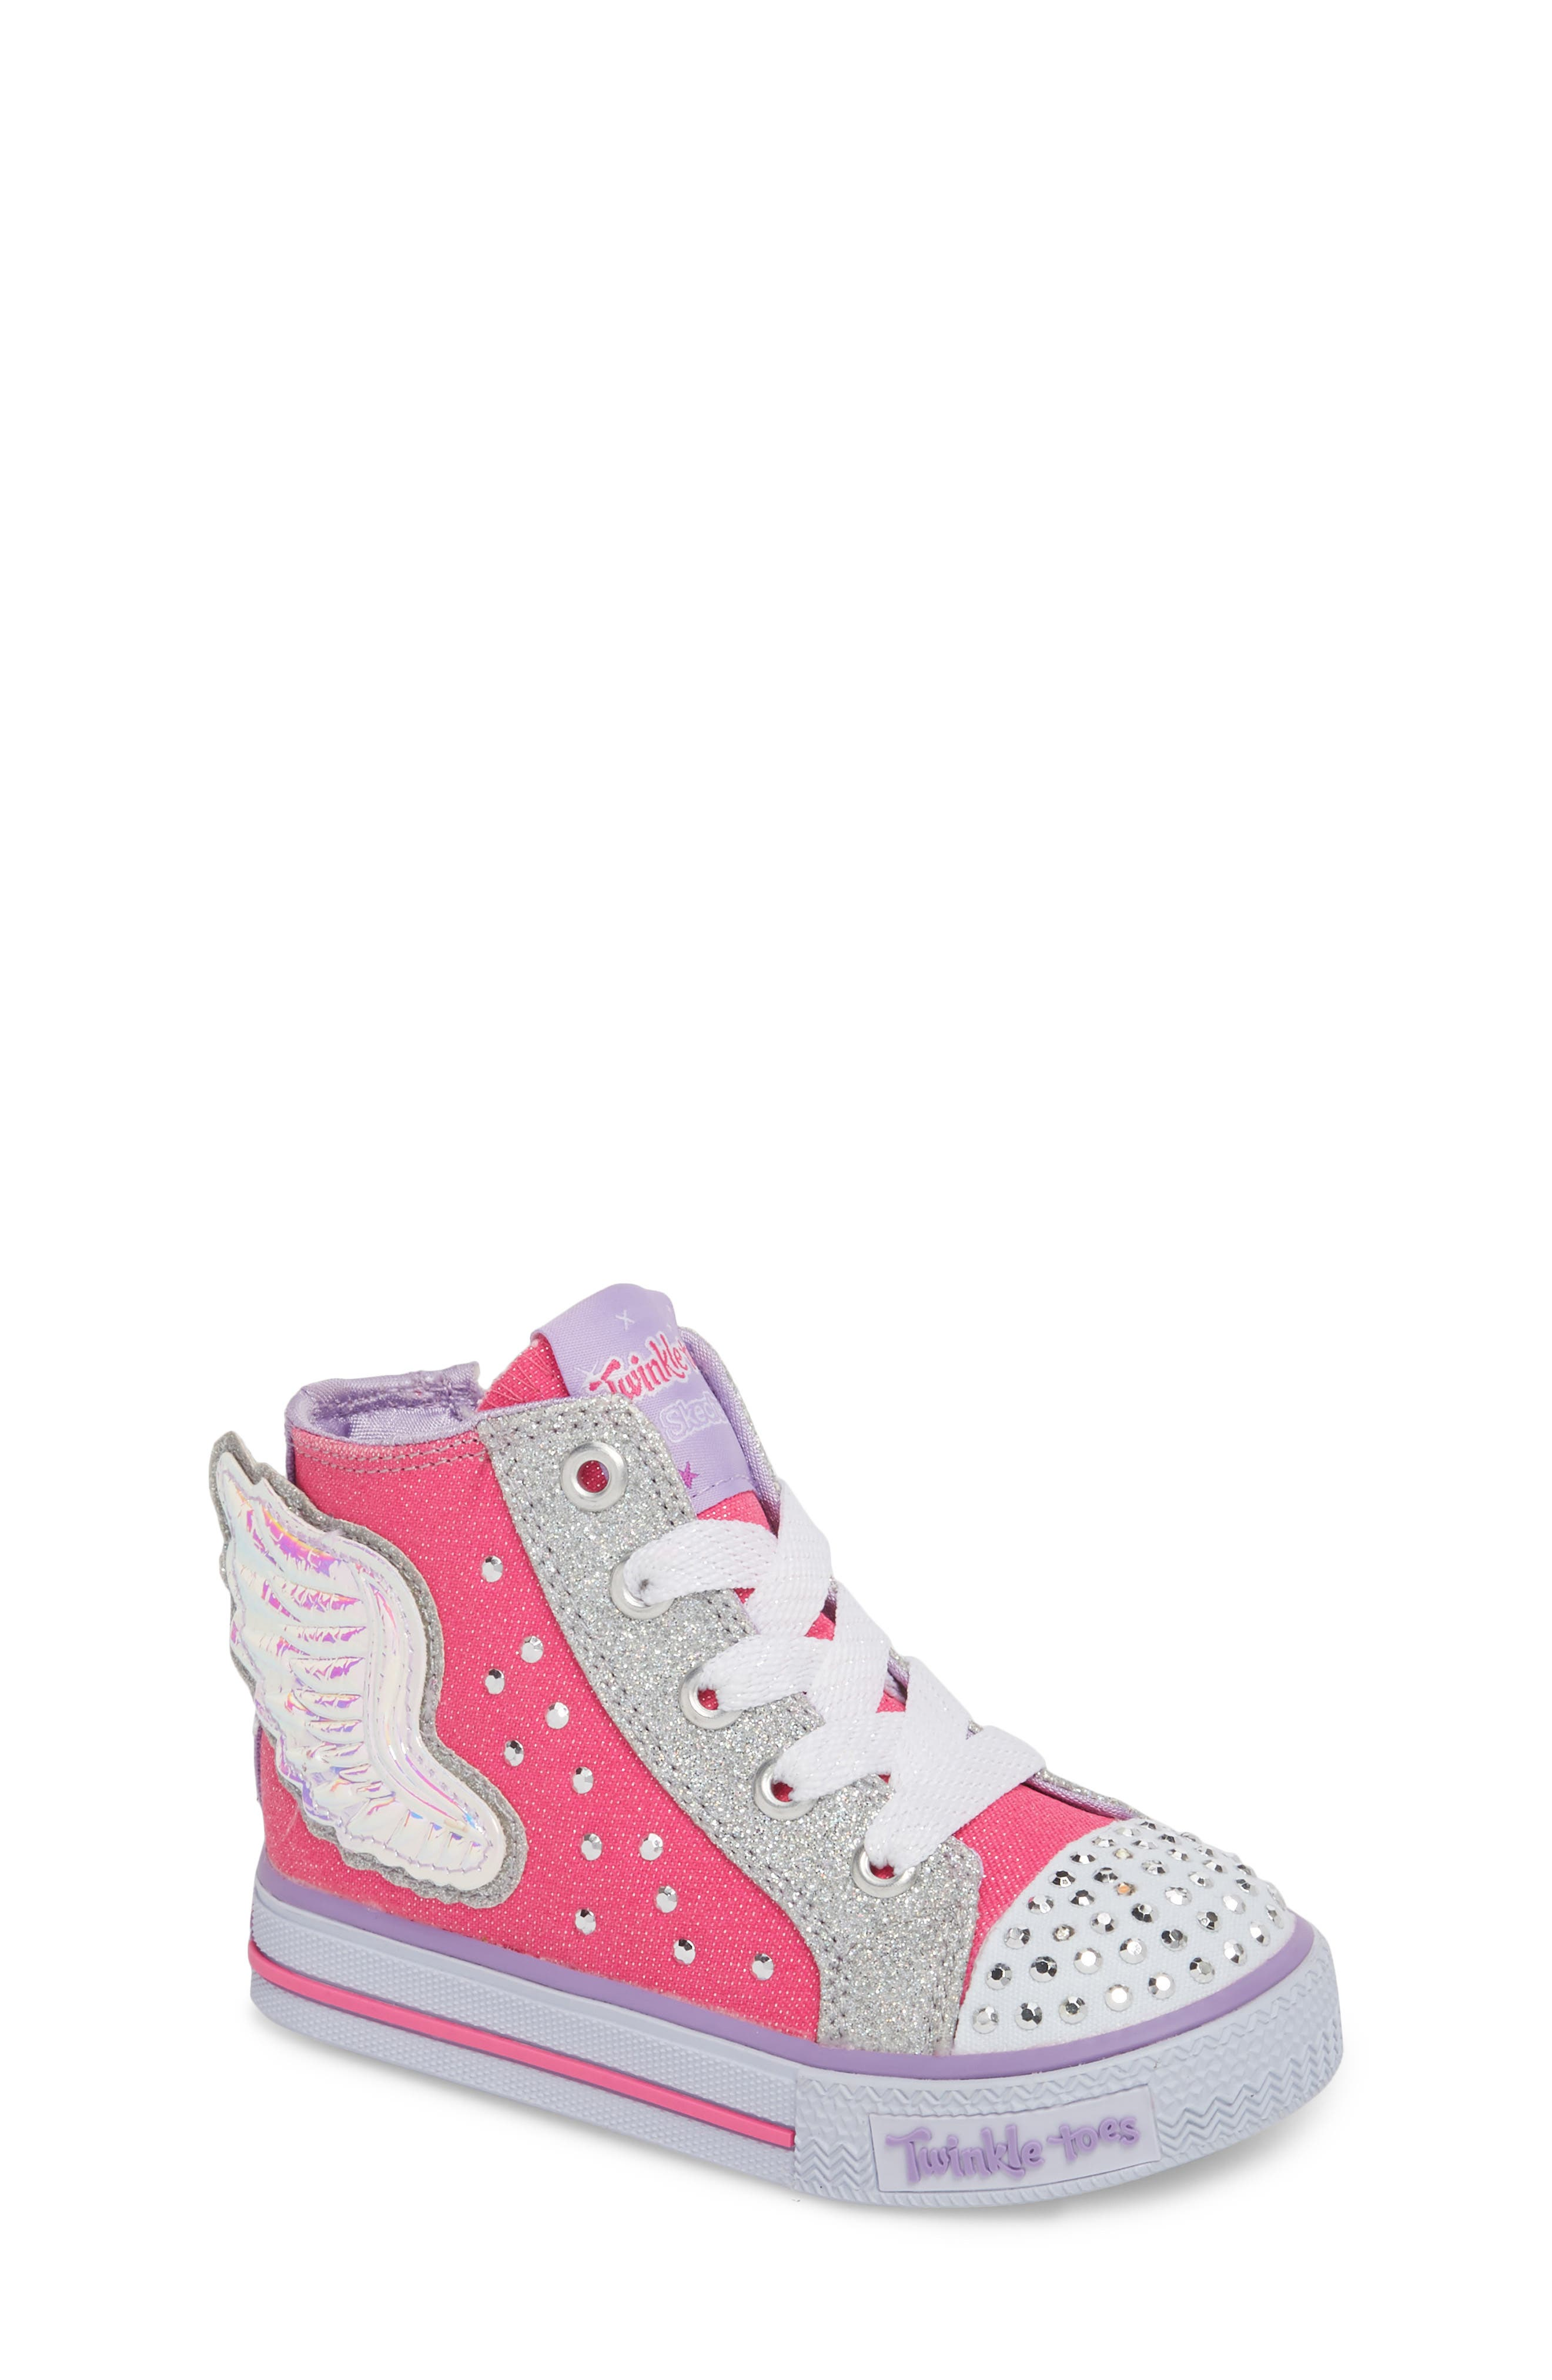 Twinkle Toes Shuffles Fooling Flutters Light-Up High Top Sneaker,                         Main,                         color, 650